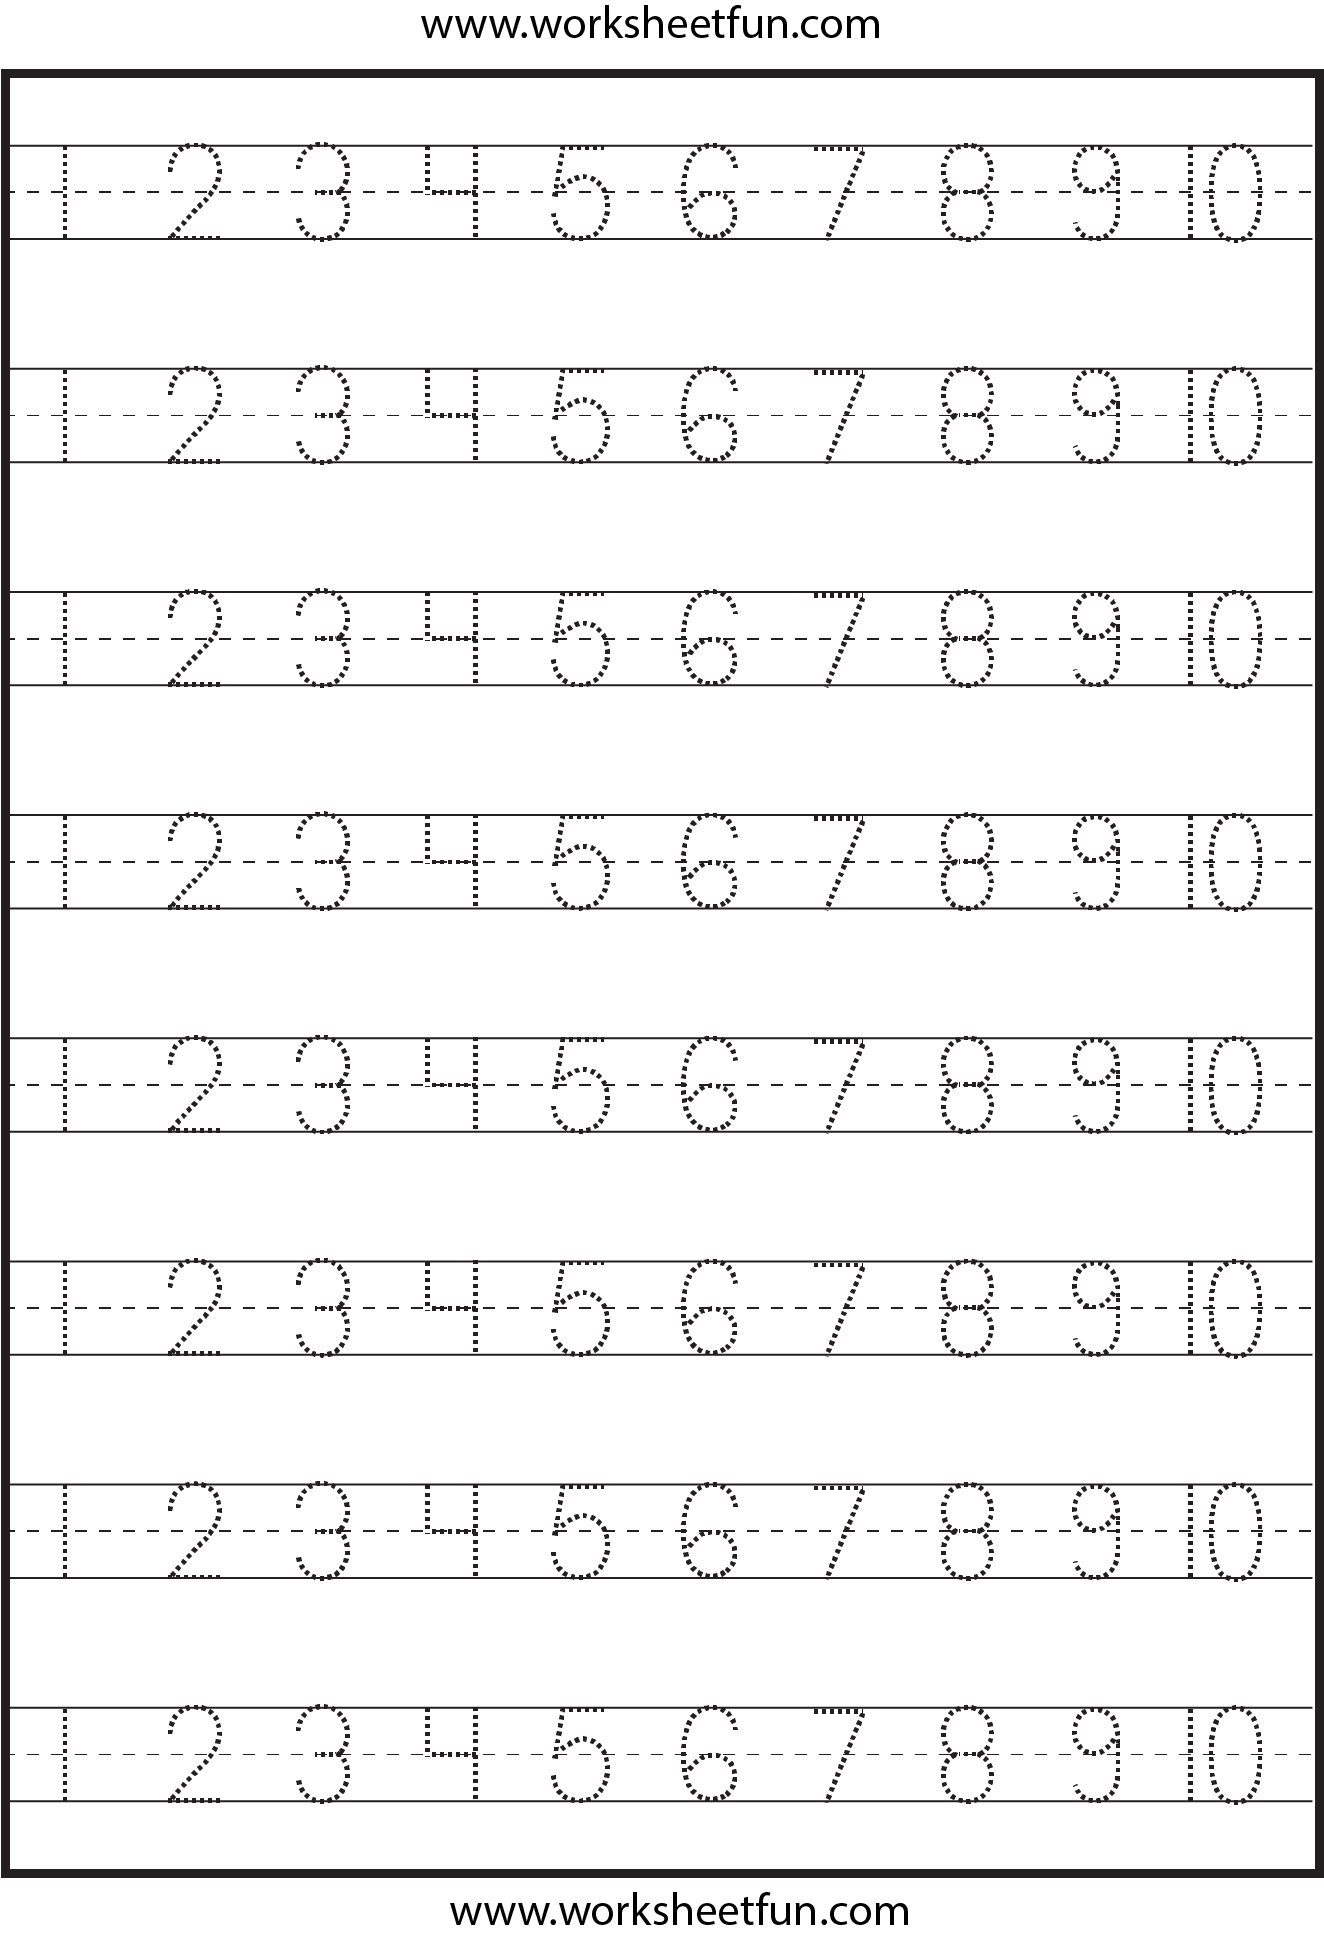 Worksheets Number Handwriting Worksheets number tracing 1 10 worksheet free printable worksheets tracing